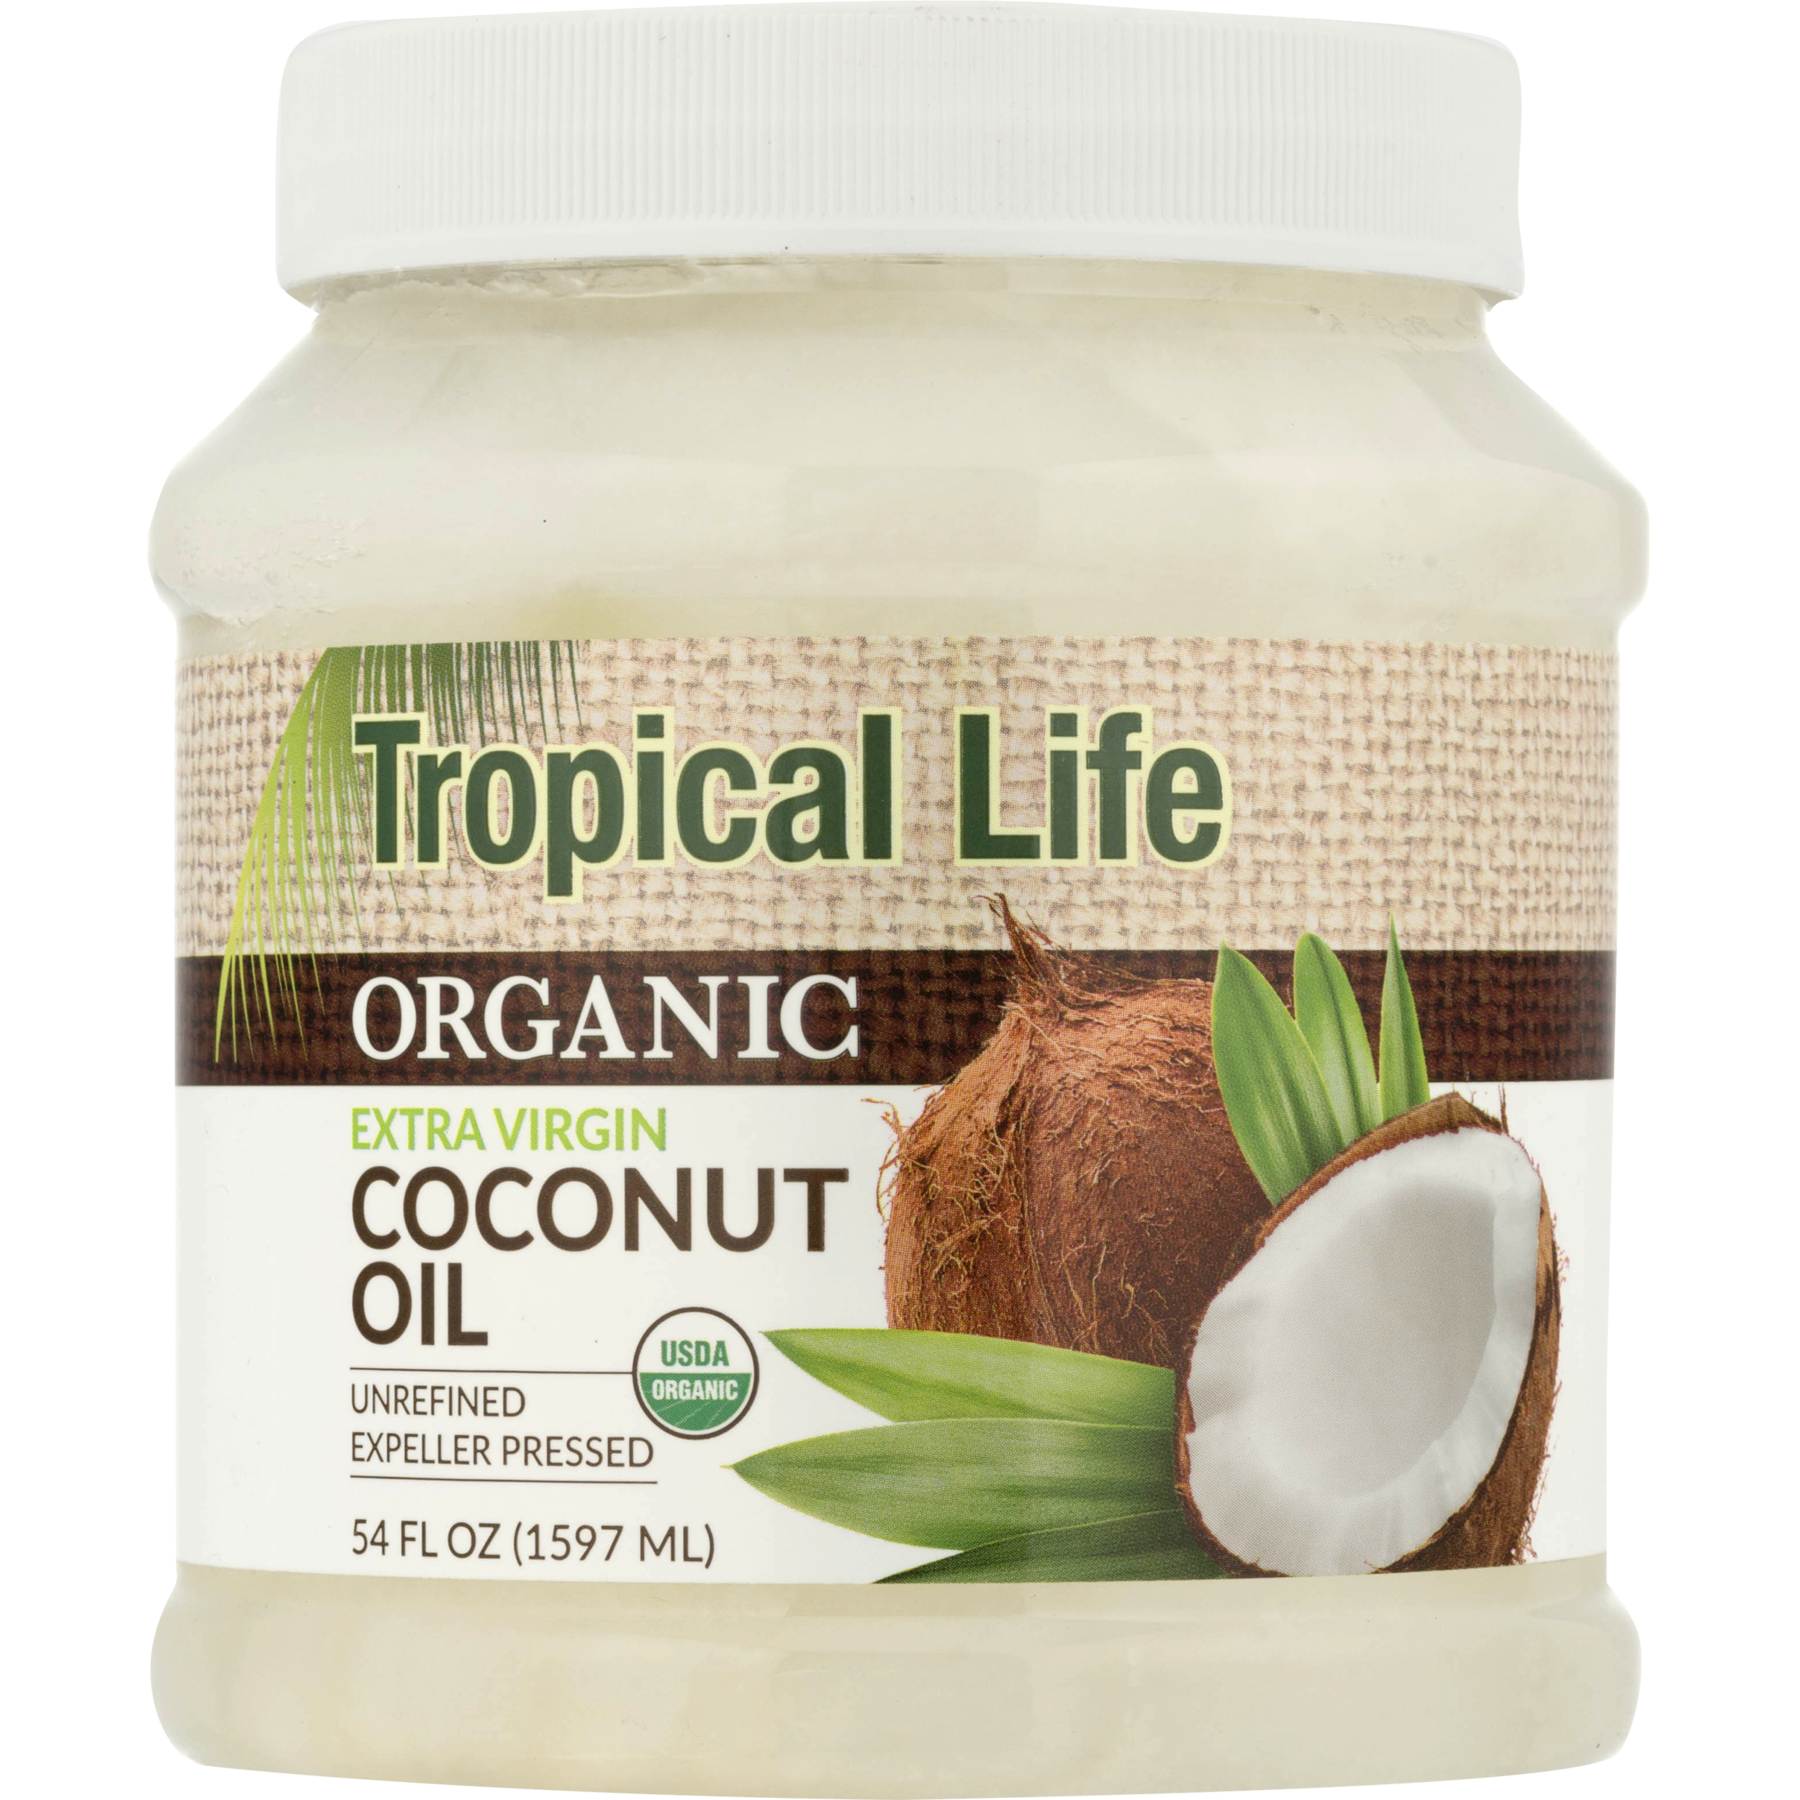 Carrington Farms Tropical Life Organic Extra Virgin Coconut Oil, 54.0 FL OZ